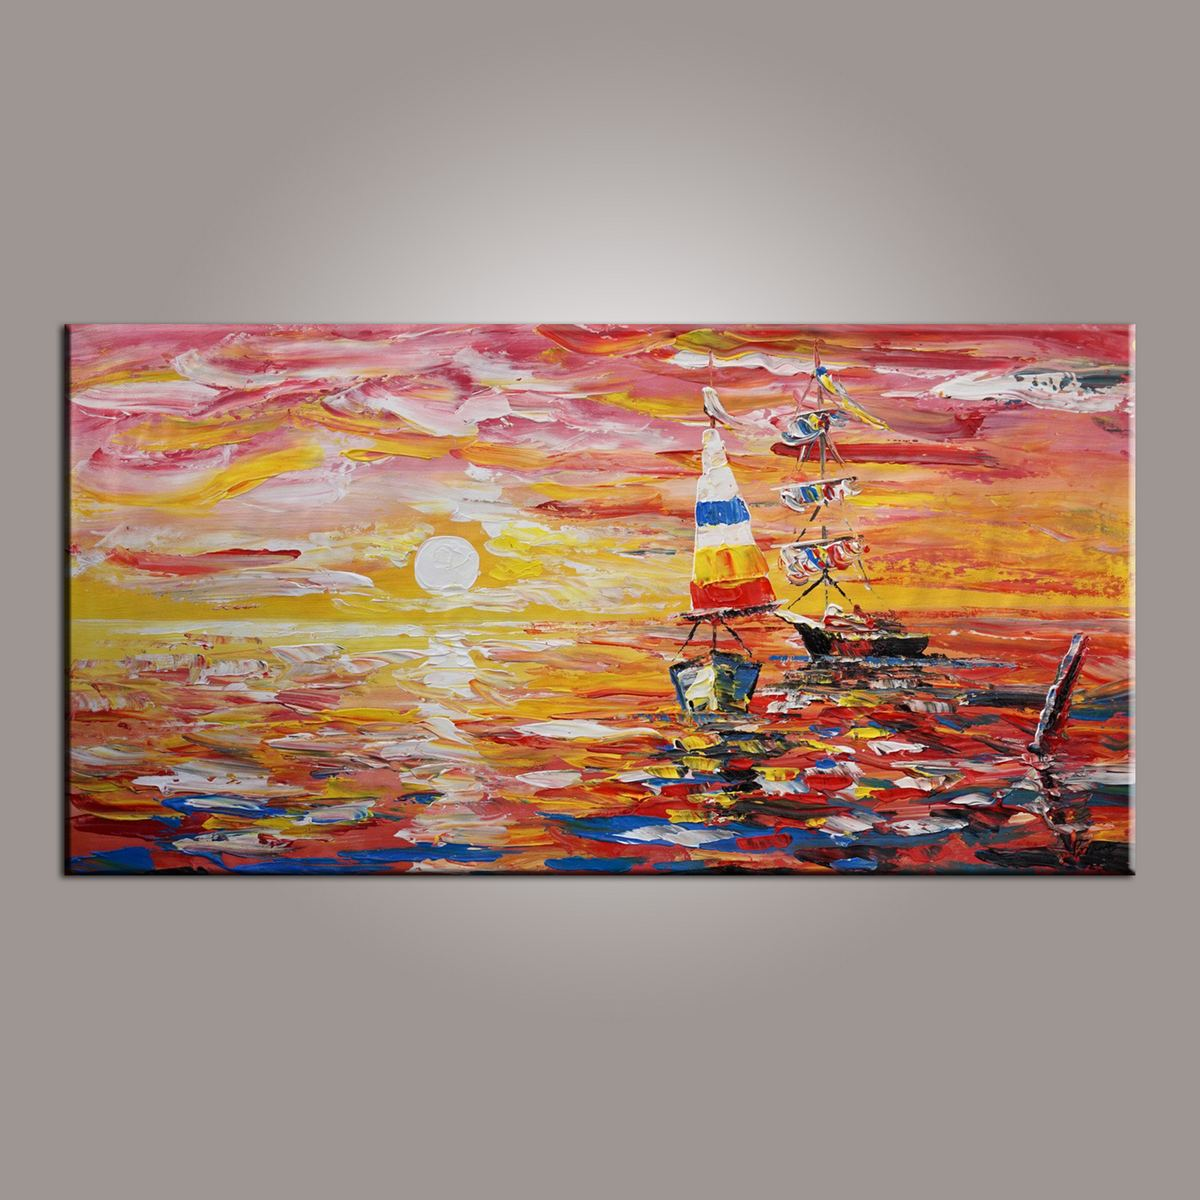 Contemporary Art, Boat Painting, Modern Art, Art Painting, Abstract Art, Living Room Wall Art, Canvas Art, Art for Sale-Paintingforhome